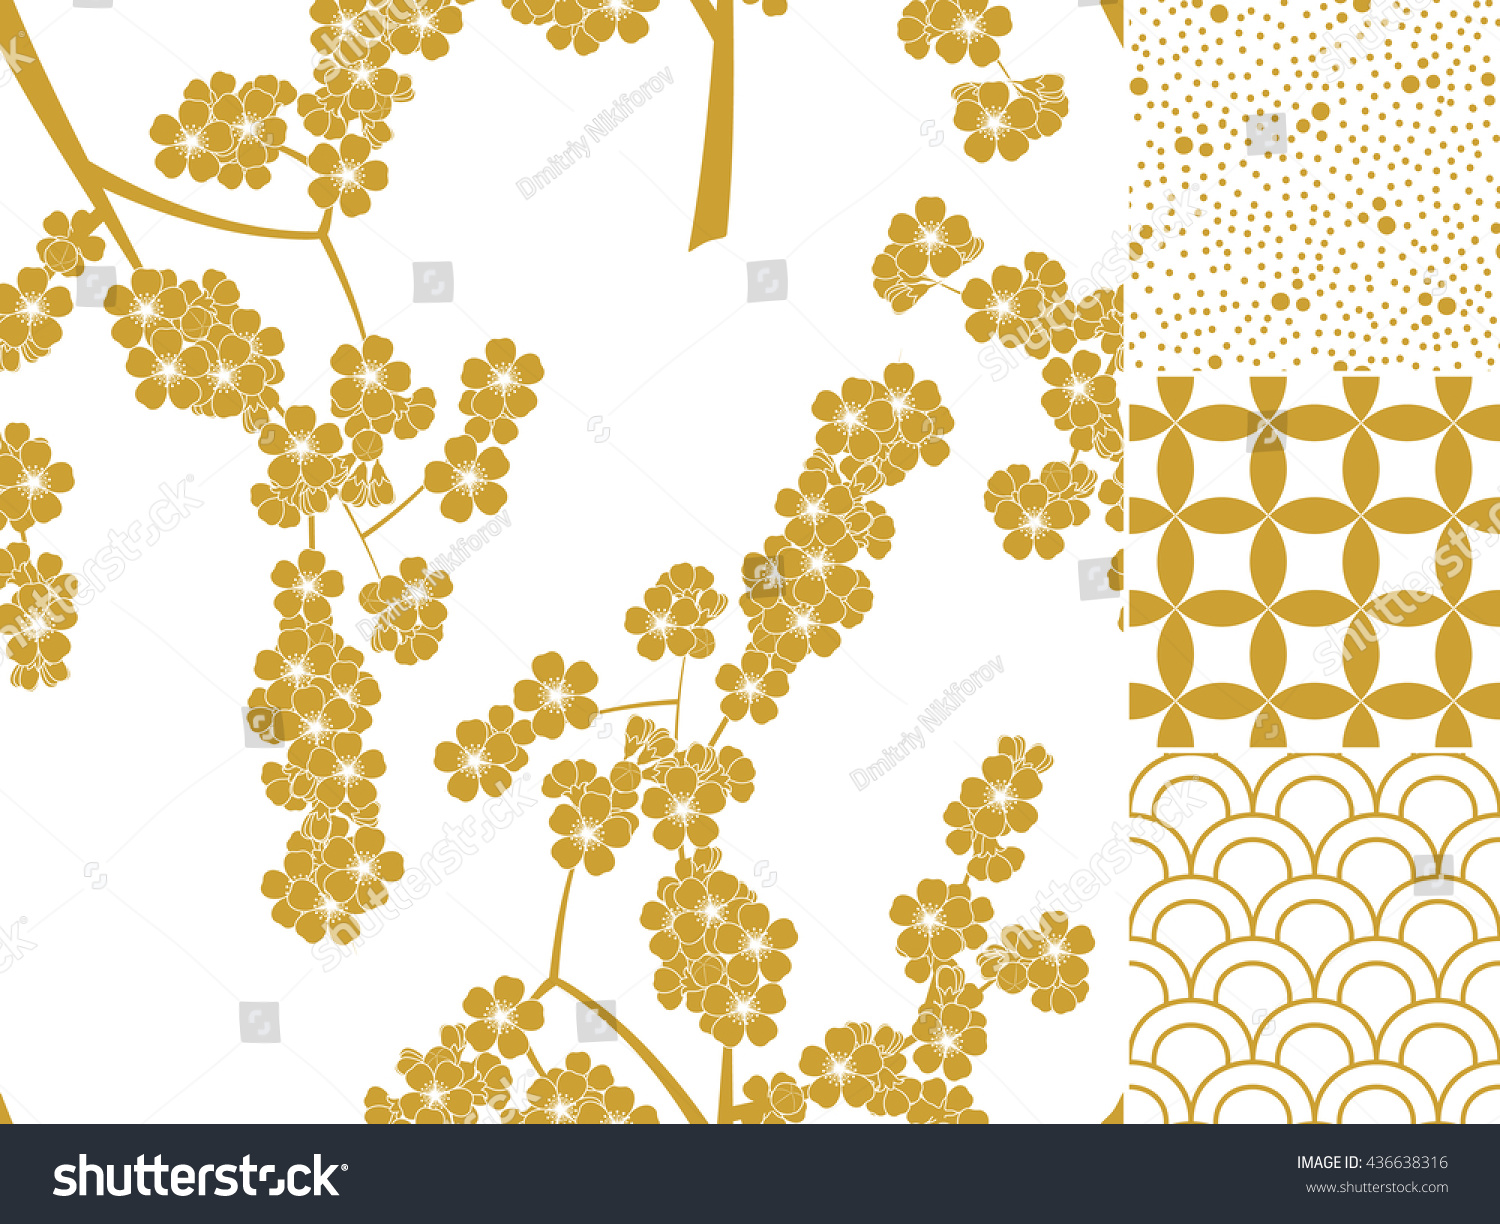 Japanese seamless pattern set with traditional ornaments Vector illustration